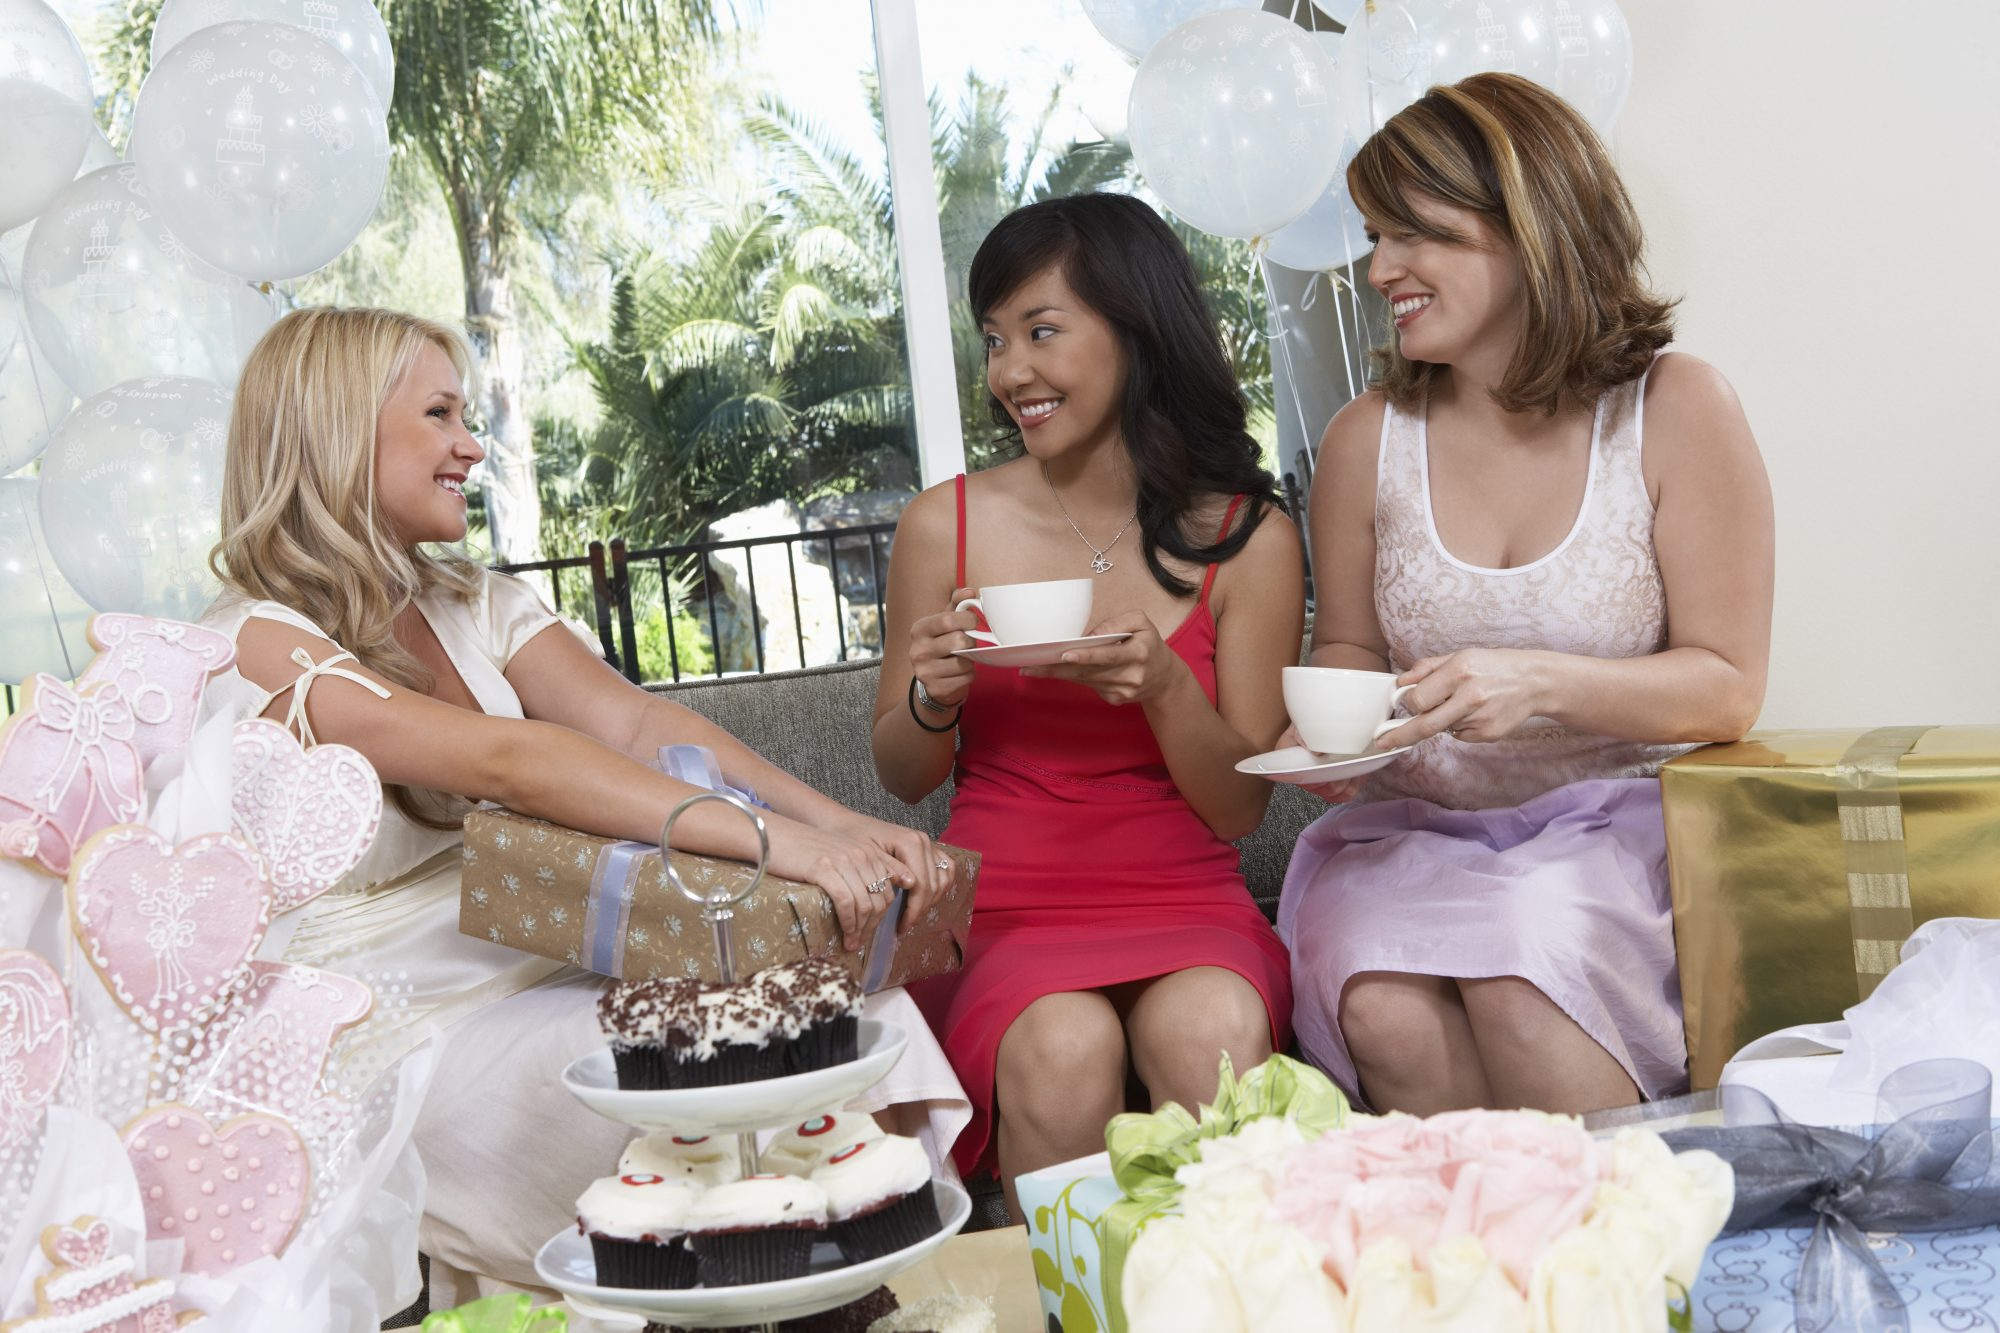 Is It Proper For Mom To Host The Bridal Shower